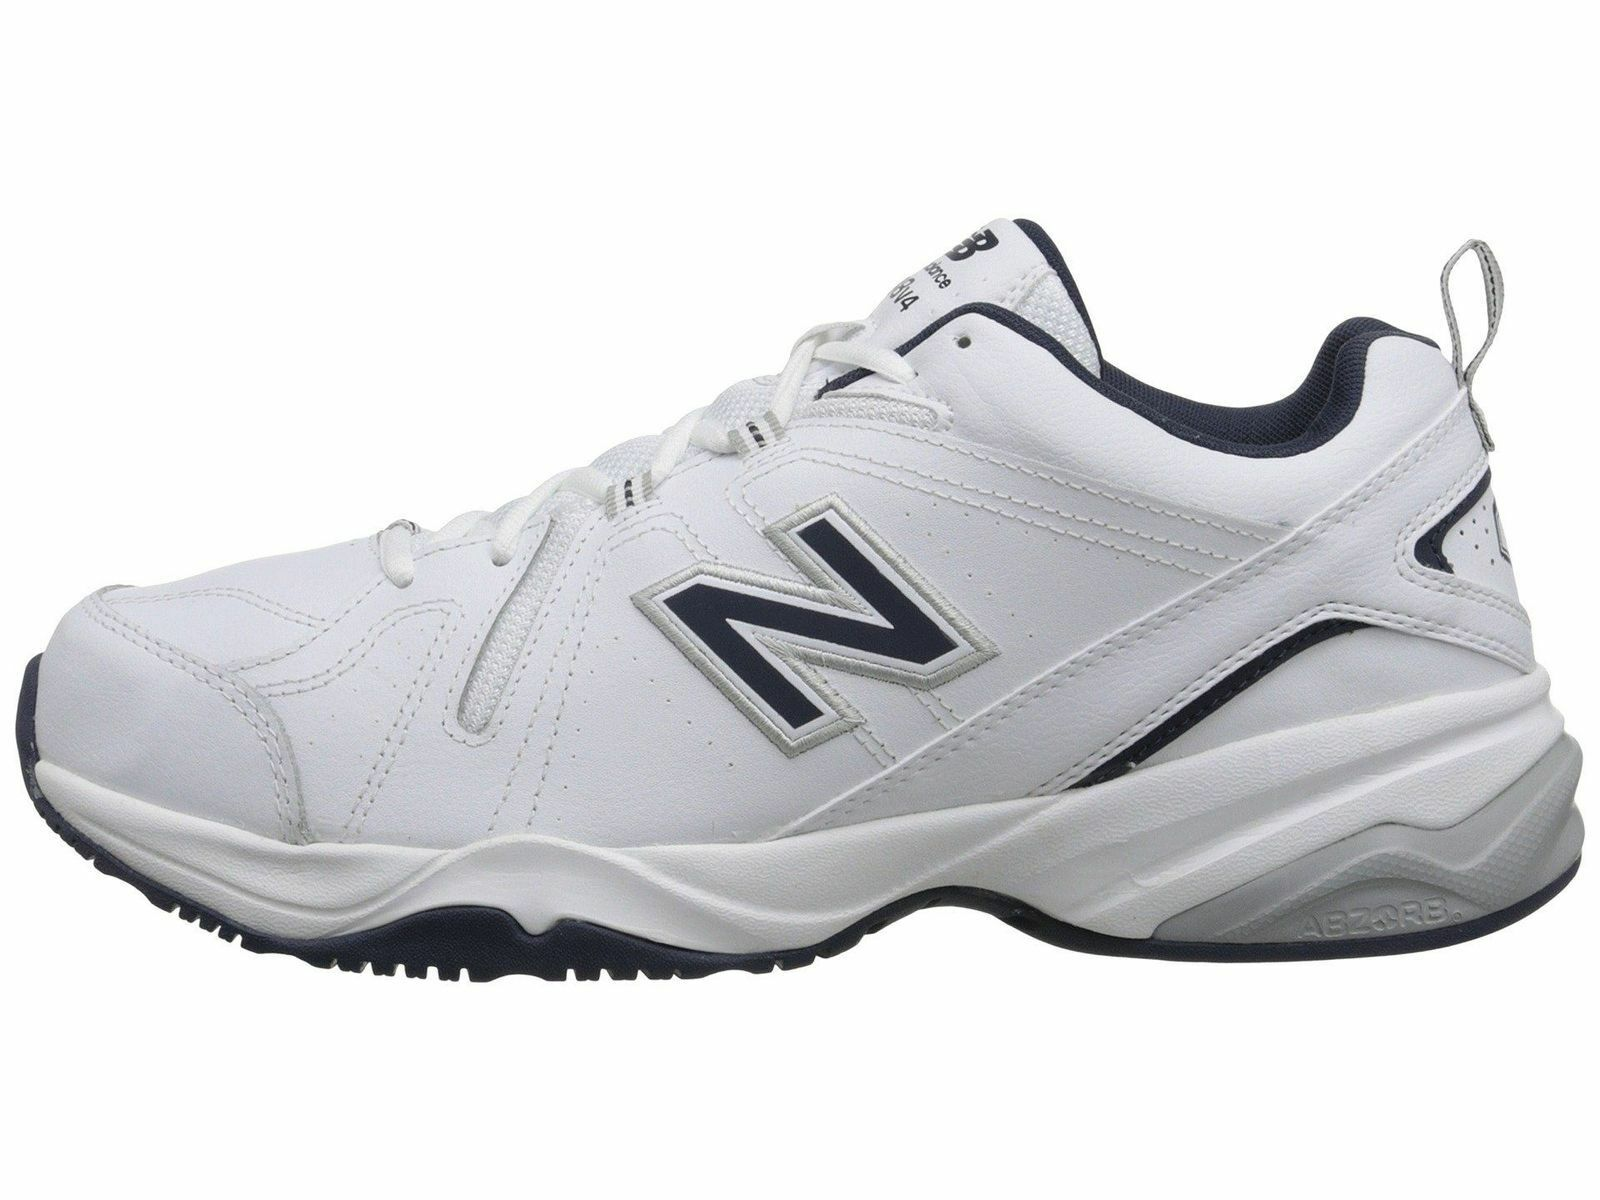 New Balance MX624WN2 White Navy Leather Men/'s Training Shoes New 100/% Authentic